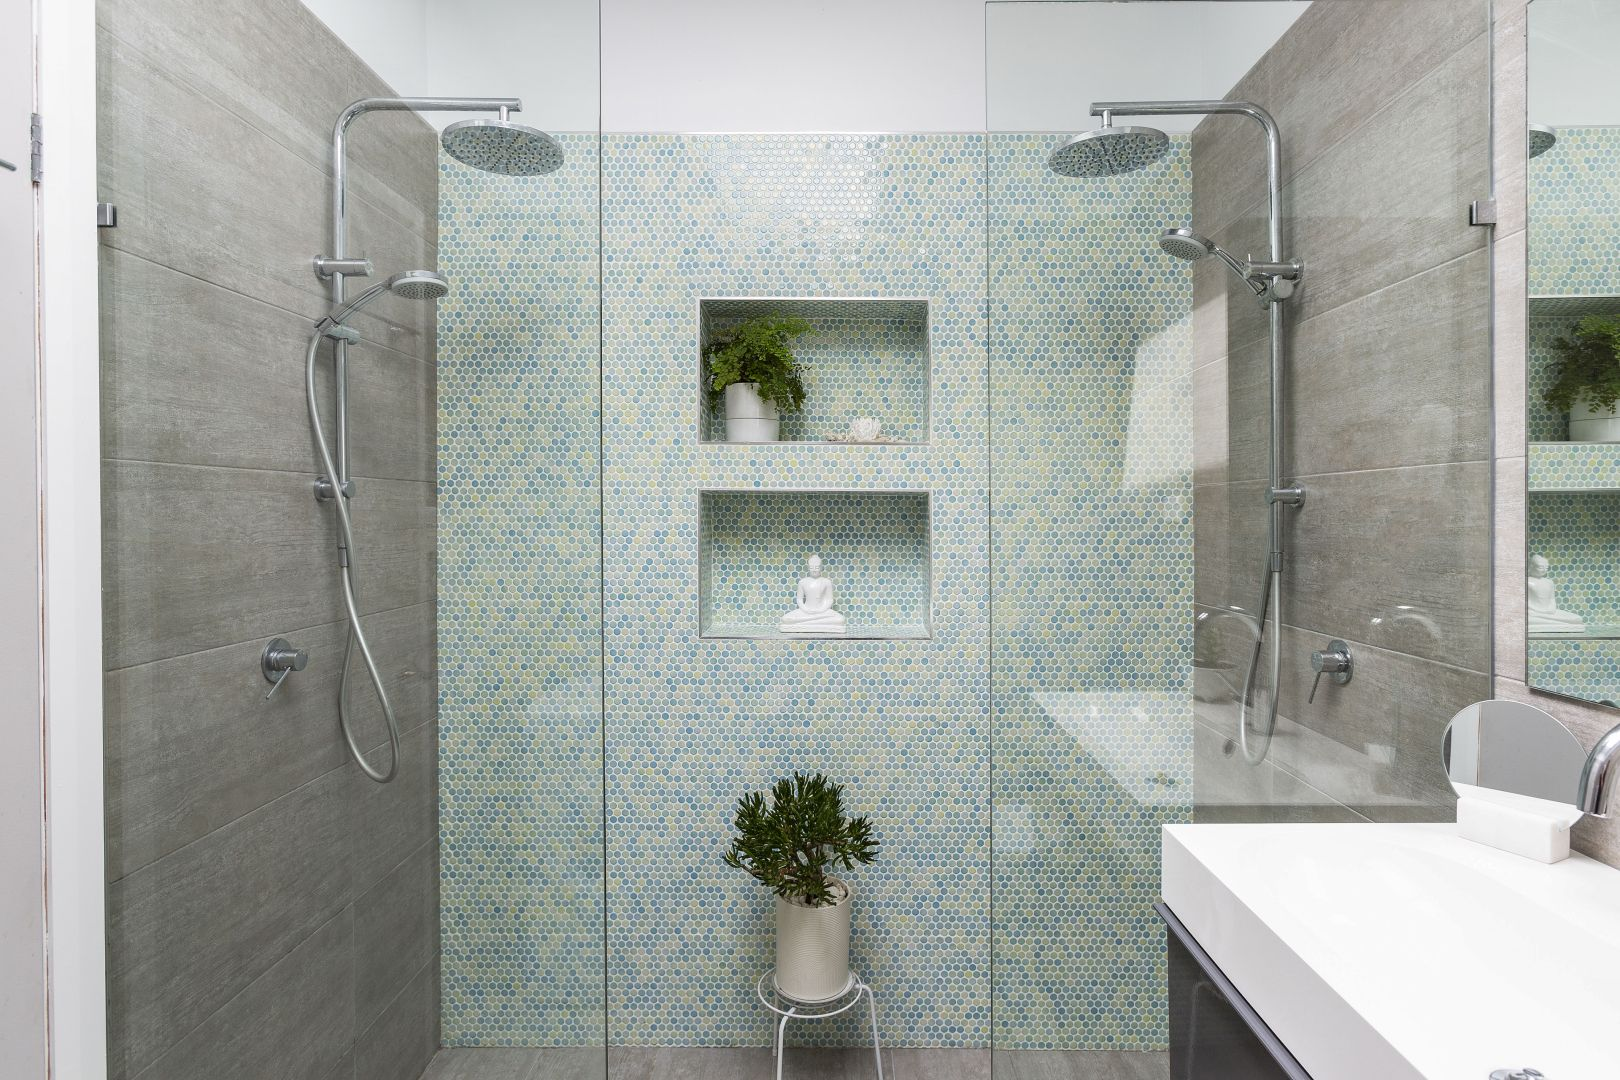 Remove all personal items from bathrooms and add an indoor plant for life and colour.